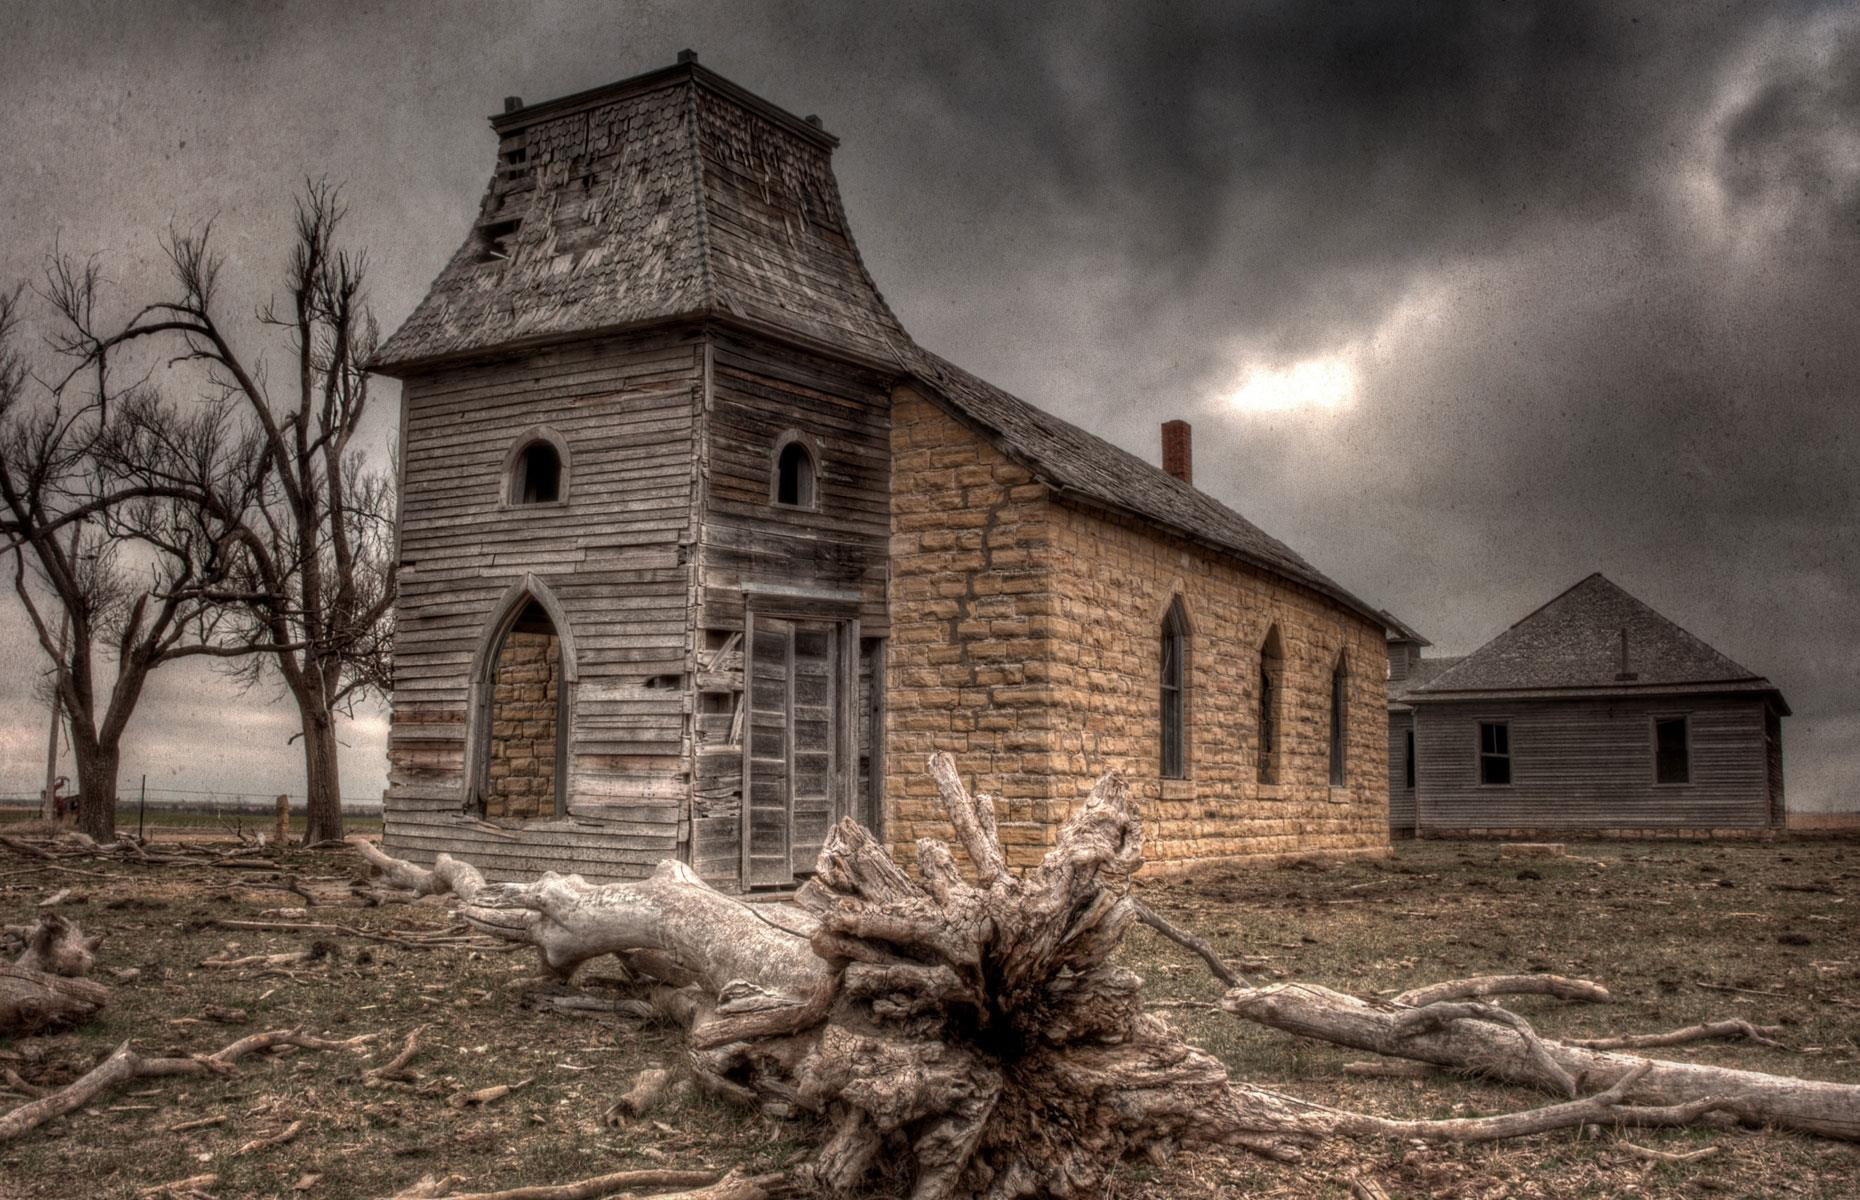 Slide 33 of 101: Today all that remains is the deserted church and its requisite graveyard. Certainly not for the faint of heart, the wooden and brick buildings have a nightmarish quality about them – we reckon they'd make the perfect backdrop for a horror movie or edgy fashion shoot.